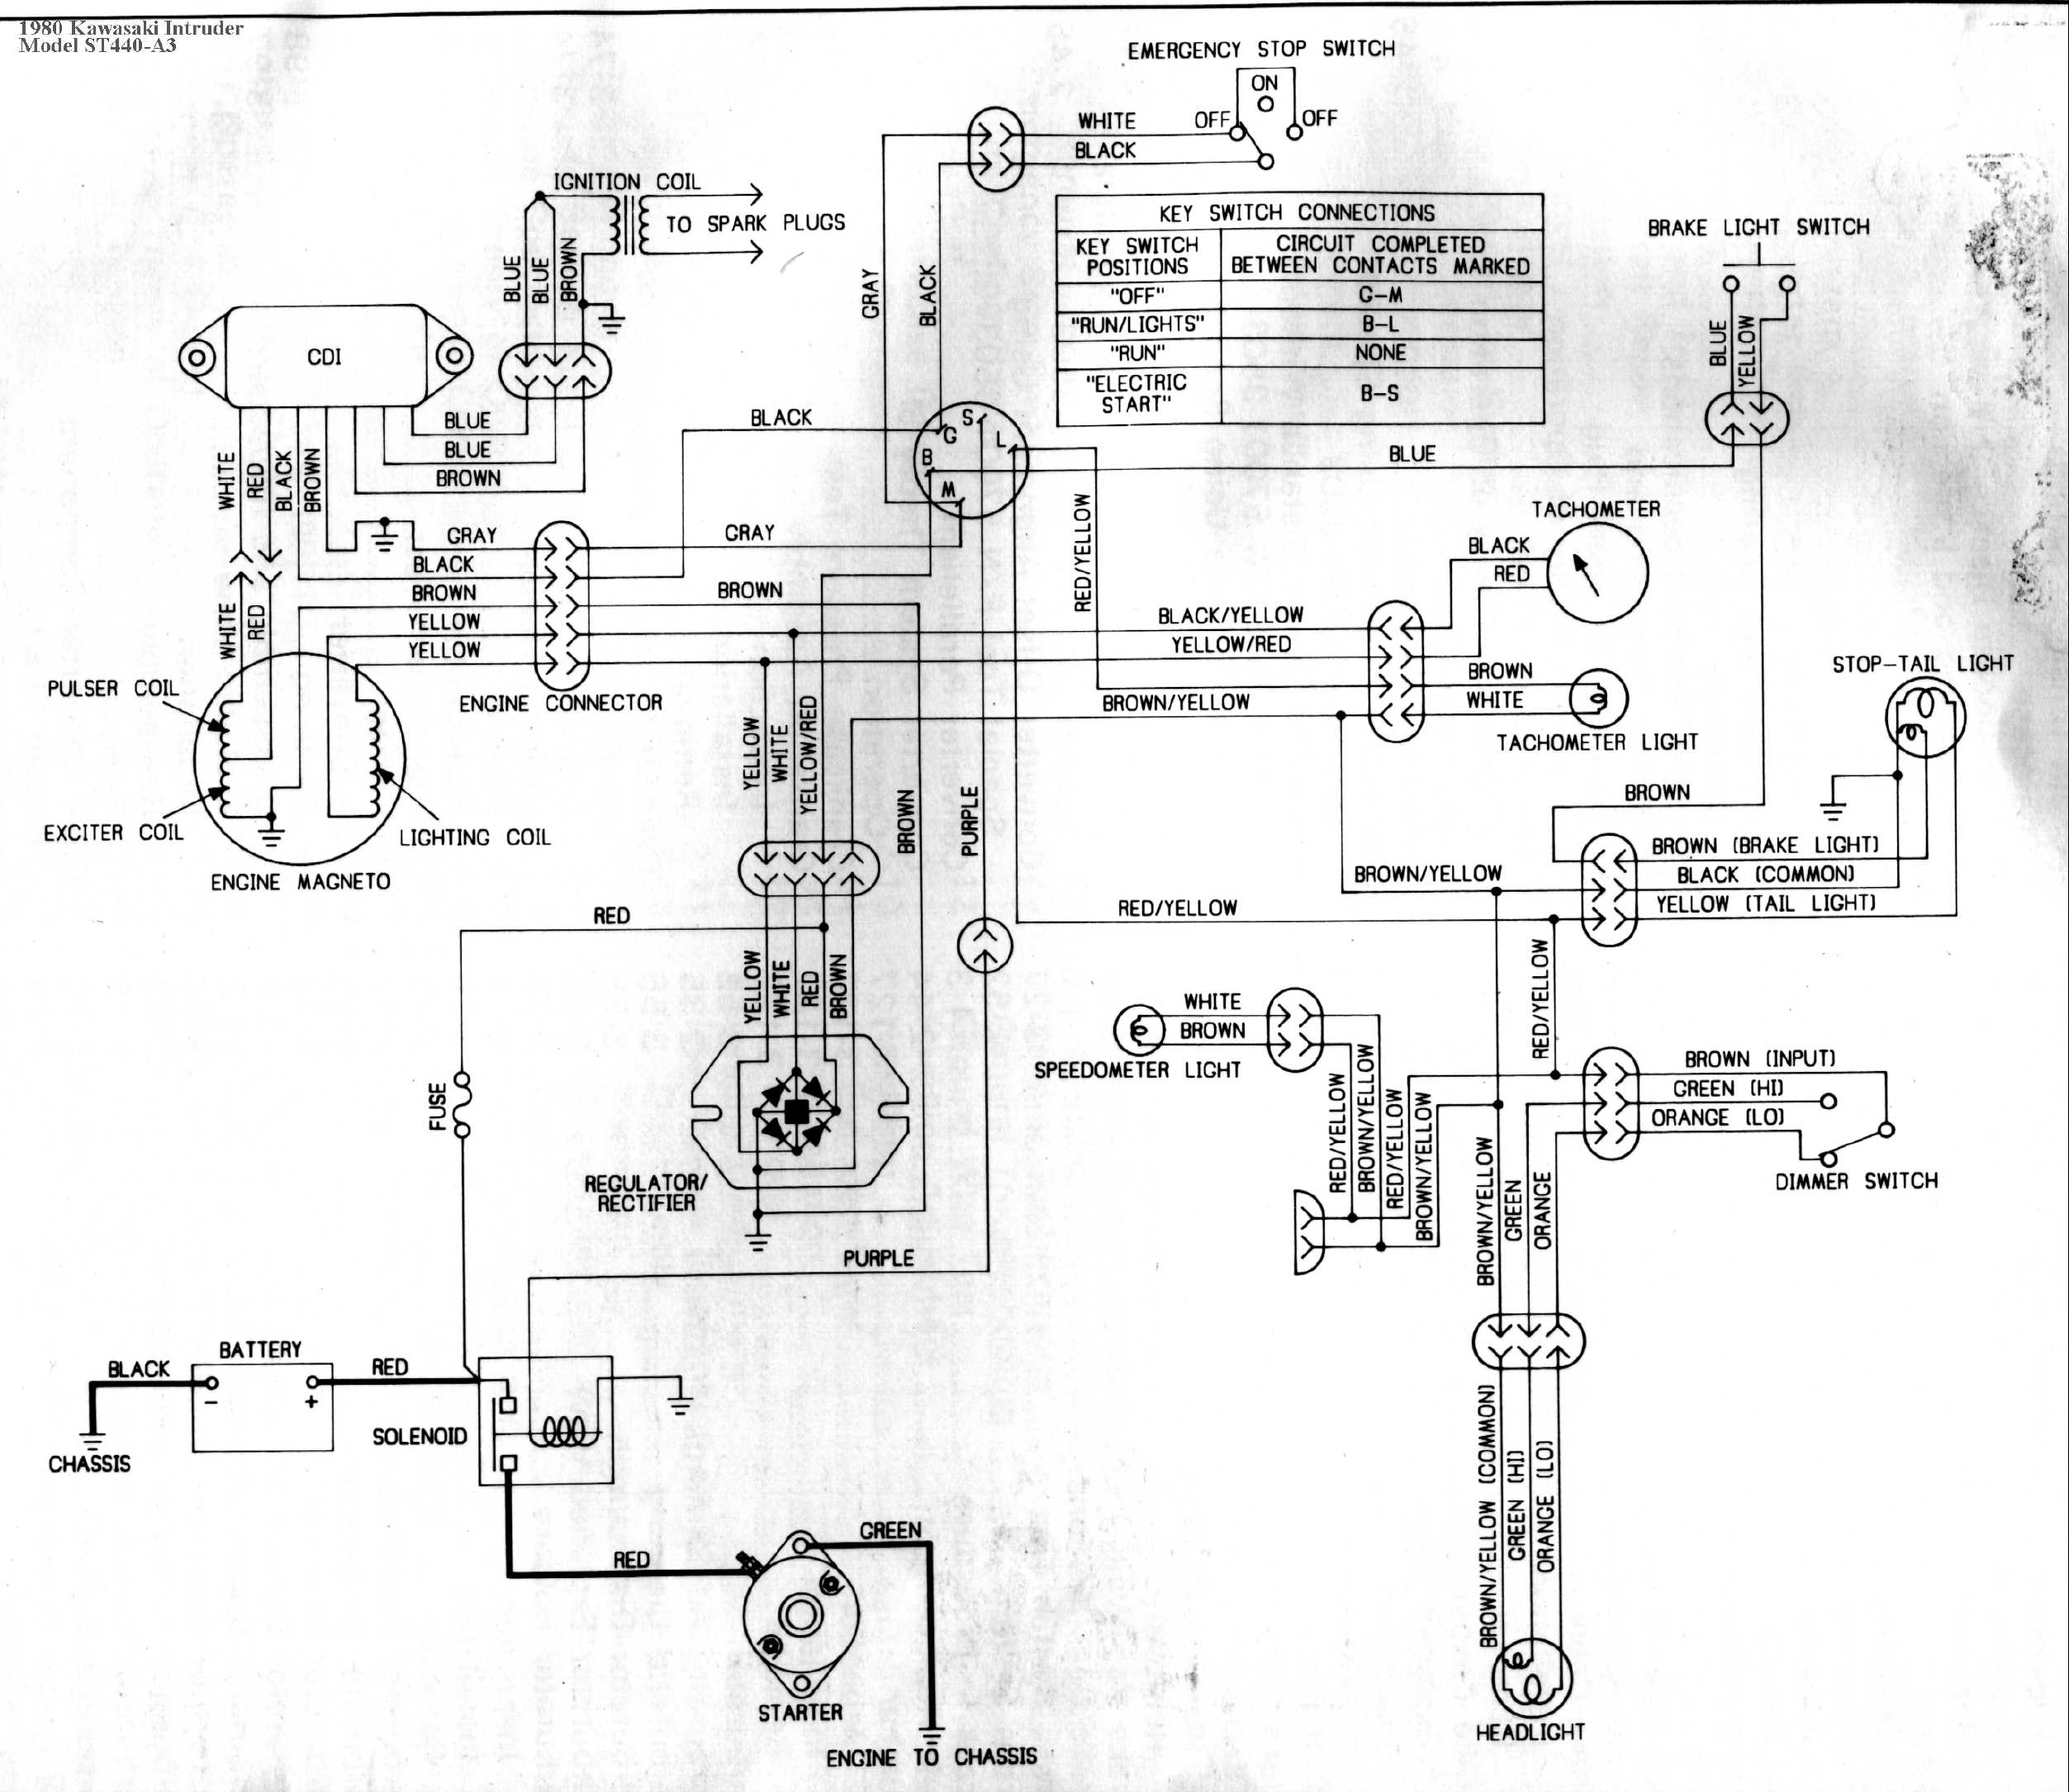 Ke100 Wiring Diagram 1989 Vehicle Diagrams Kawasaki 1980 G5 Kz1000 Ltd At Eklablog